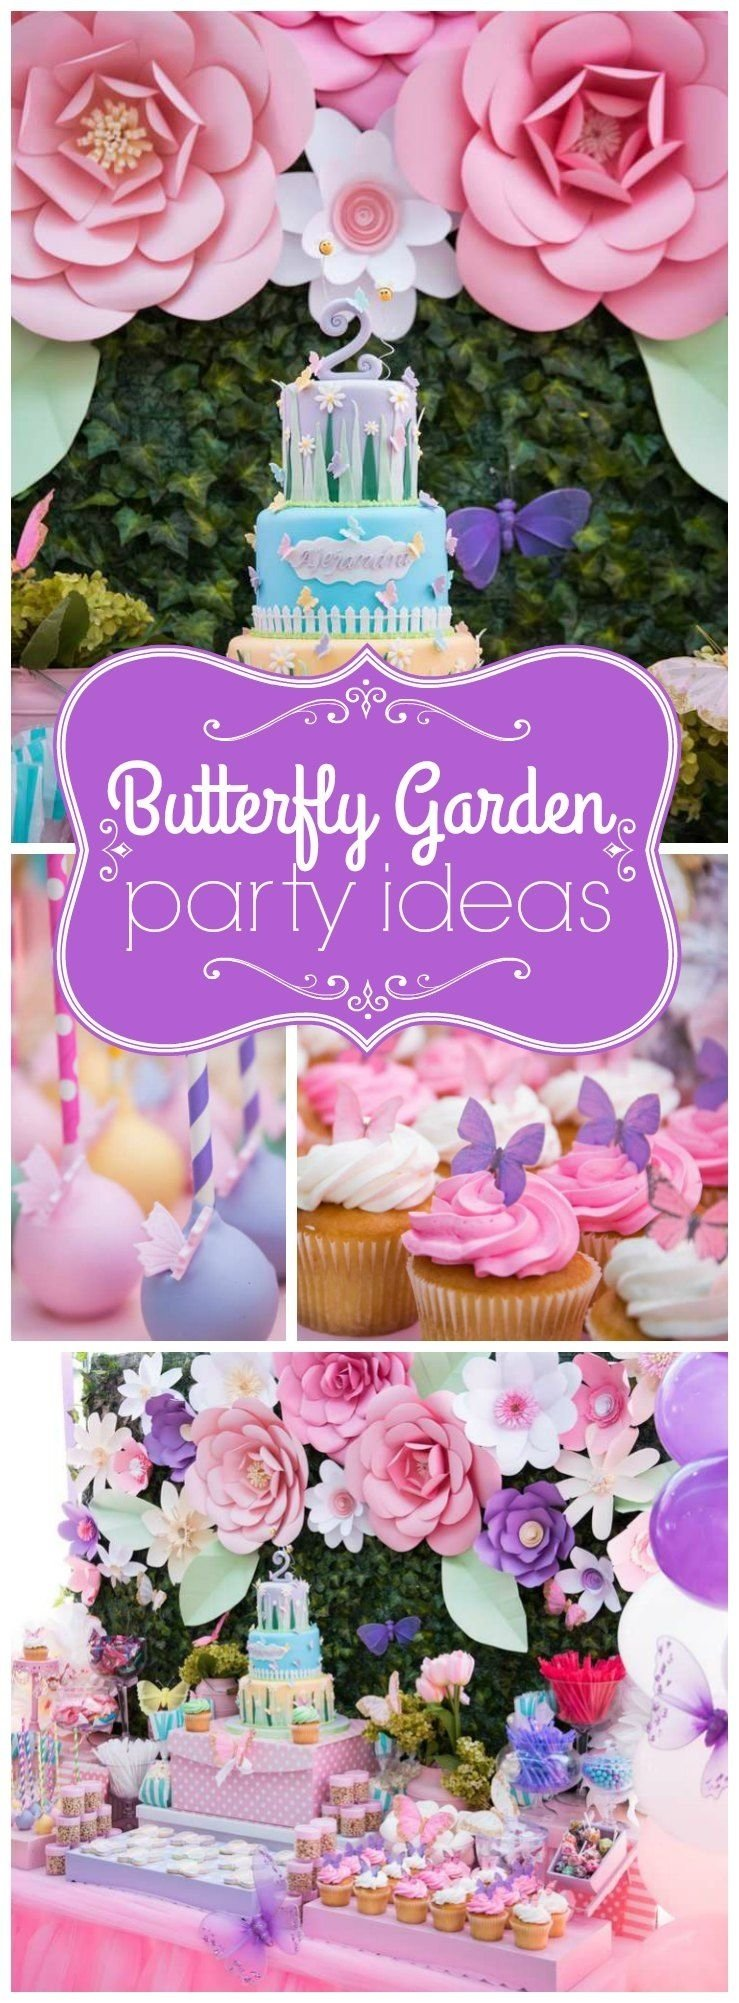 10 Gorgeous Unique 1St Birthday Ideas For Girls 1st birthday party themes for boygirl twins tags 1st birthday